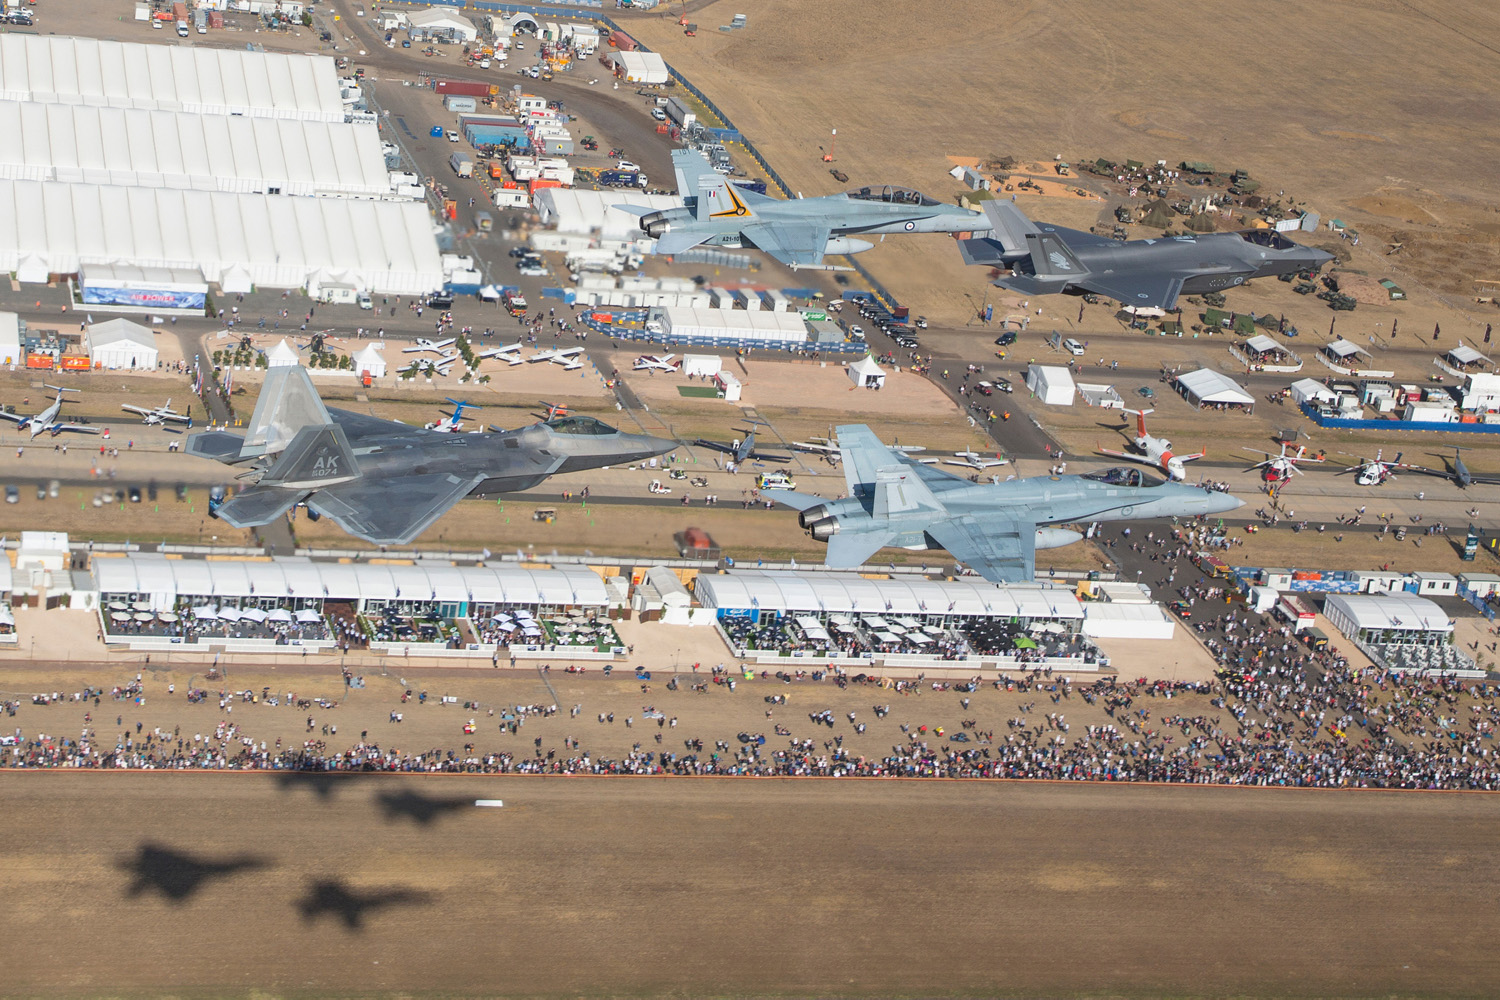 A special formation of a Royal Australian Air Force F-35A, two F/A-18A/B Hornets and a U.S. Air Force F-22A Raptor flies over the Avalon Airshow site during a joint display on March 1, 2019. (Commonwealth of Australia)